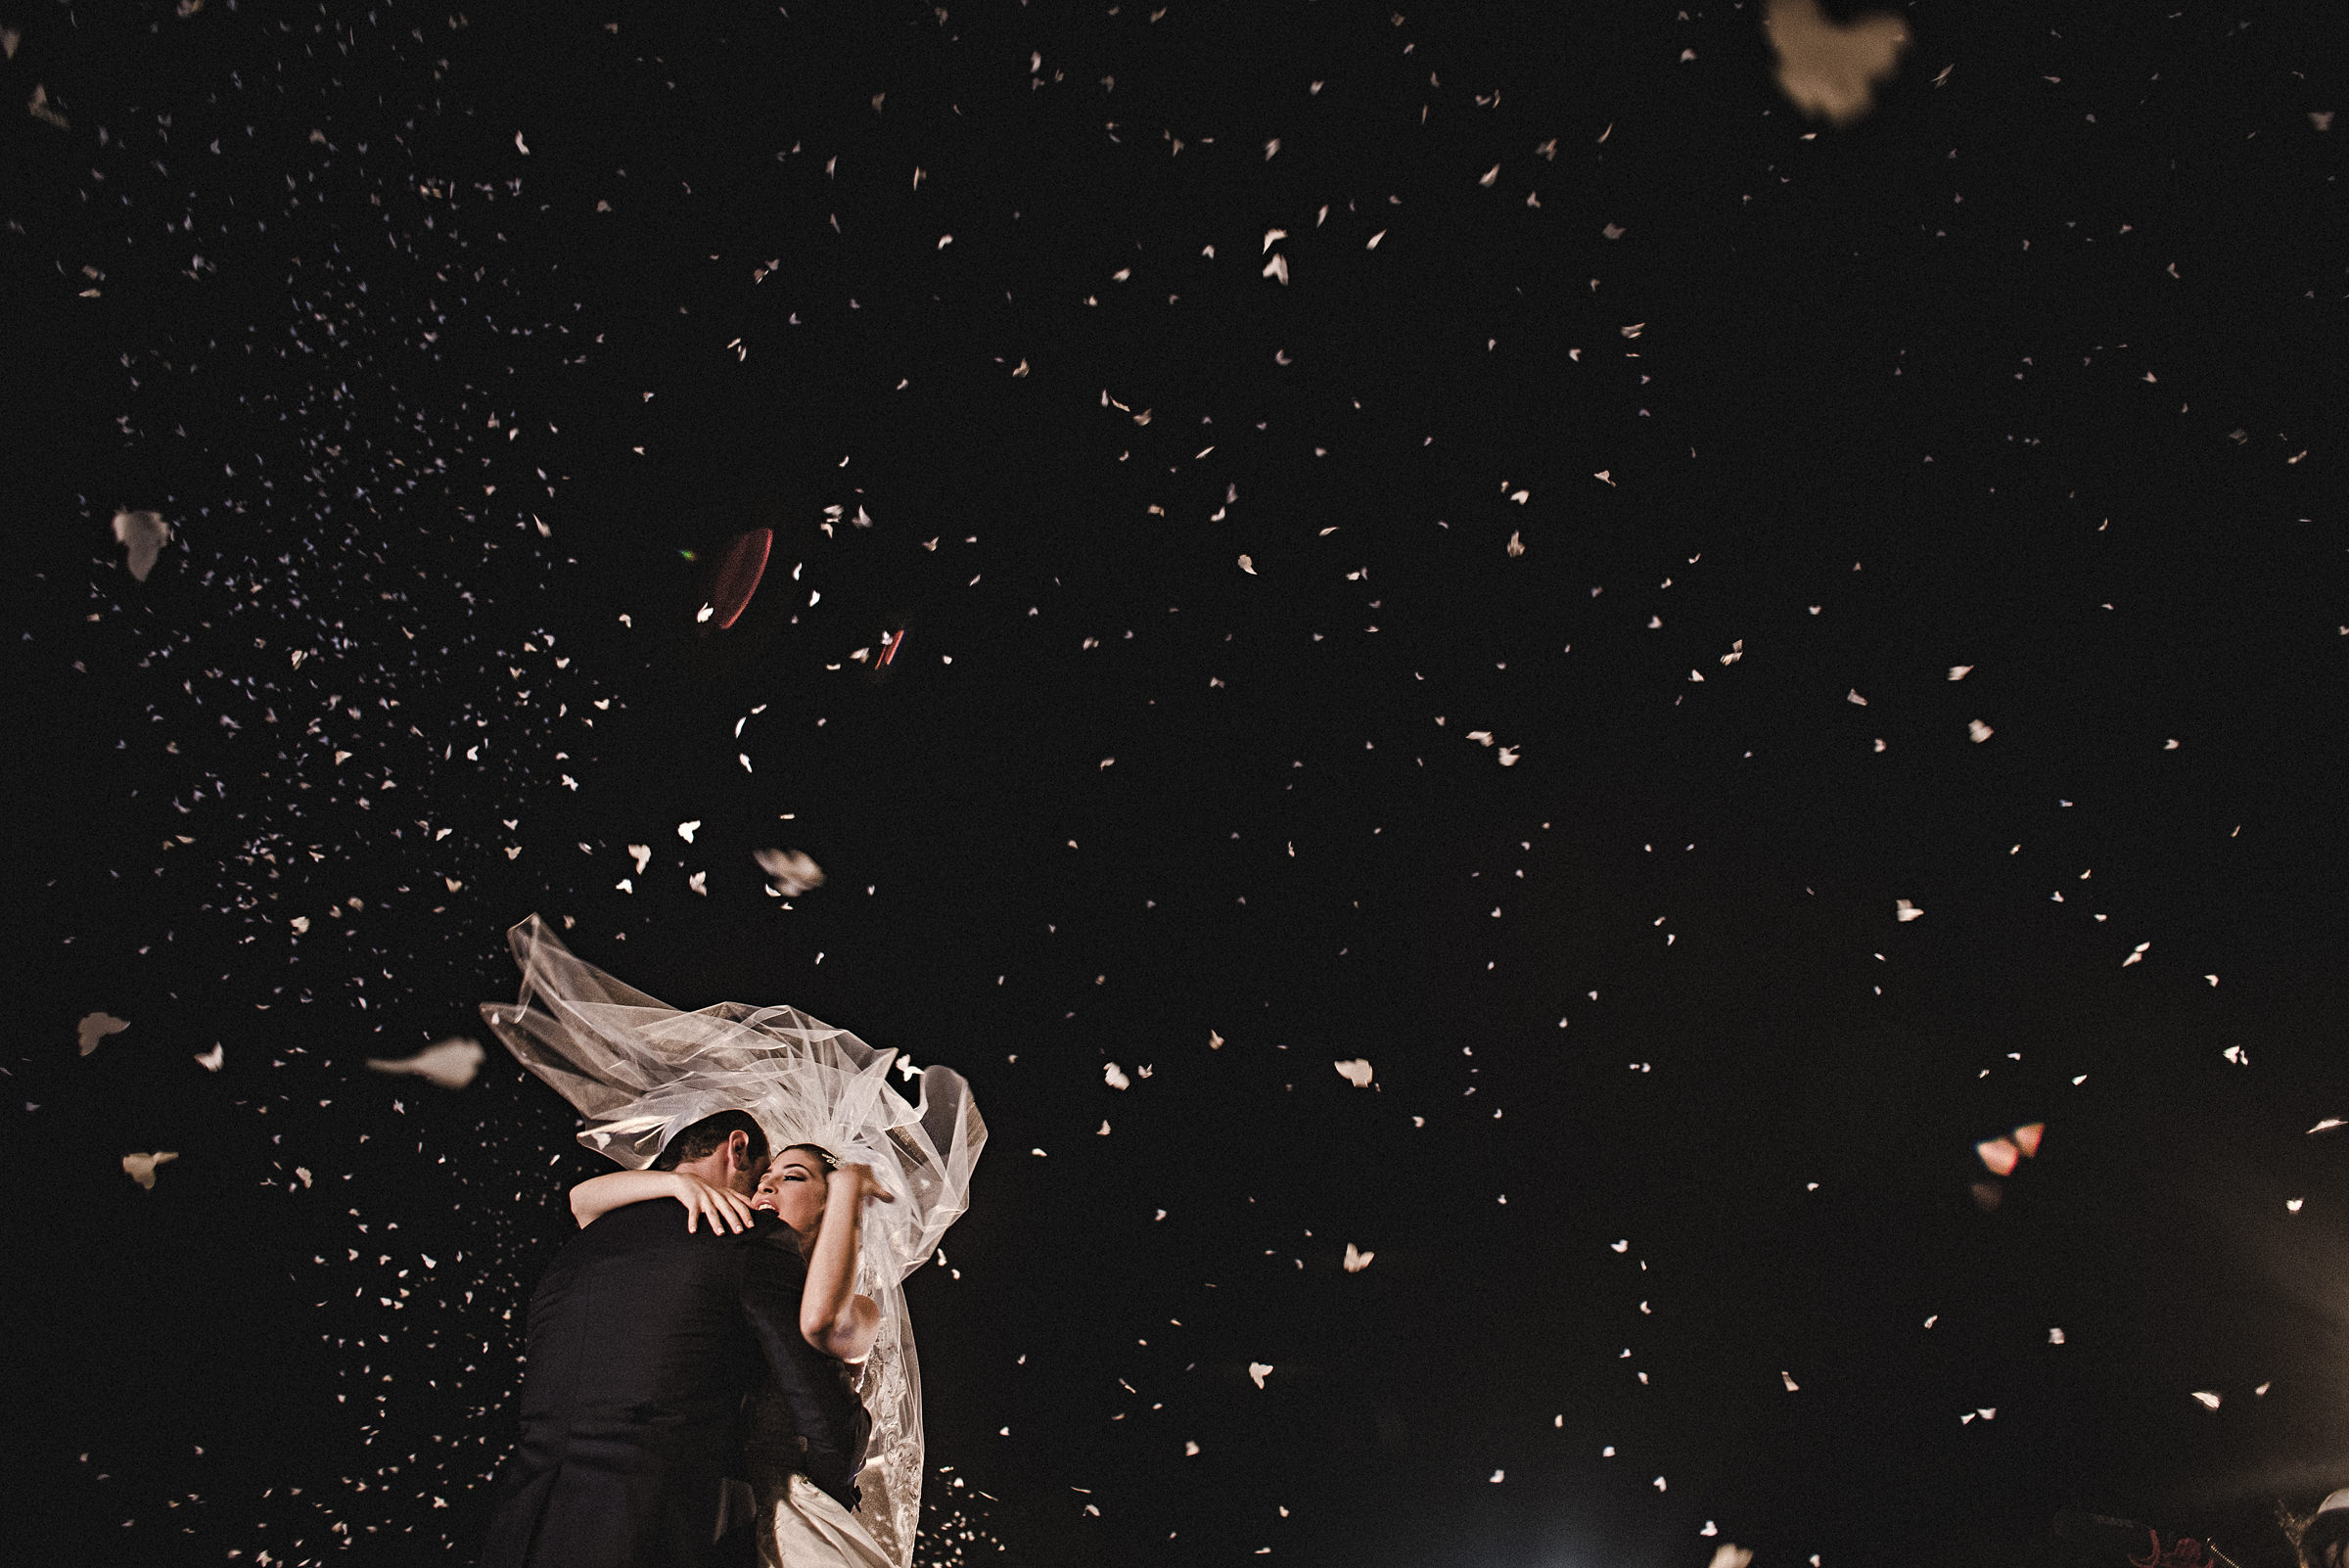 Festive moment with couple surrounded by butterflies - photo by El Marco Rojo